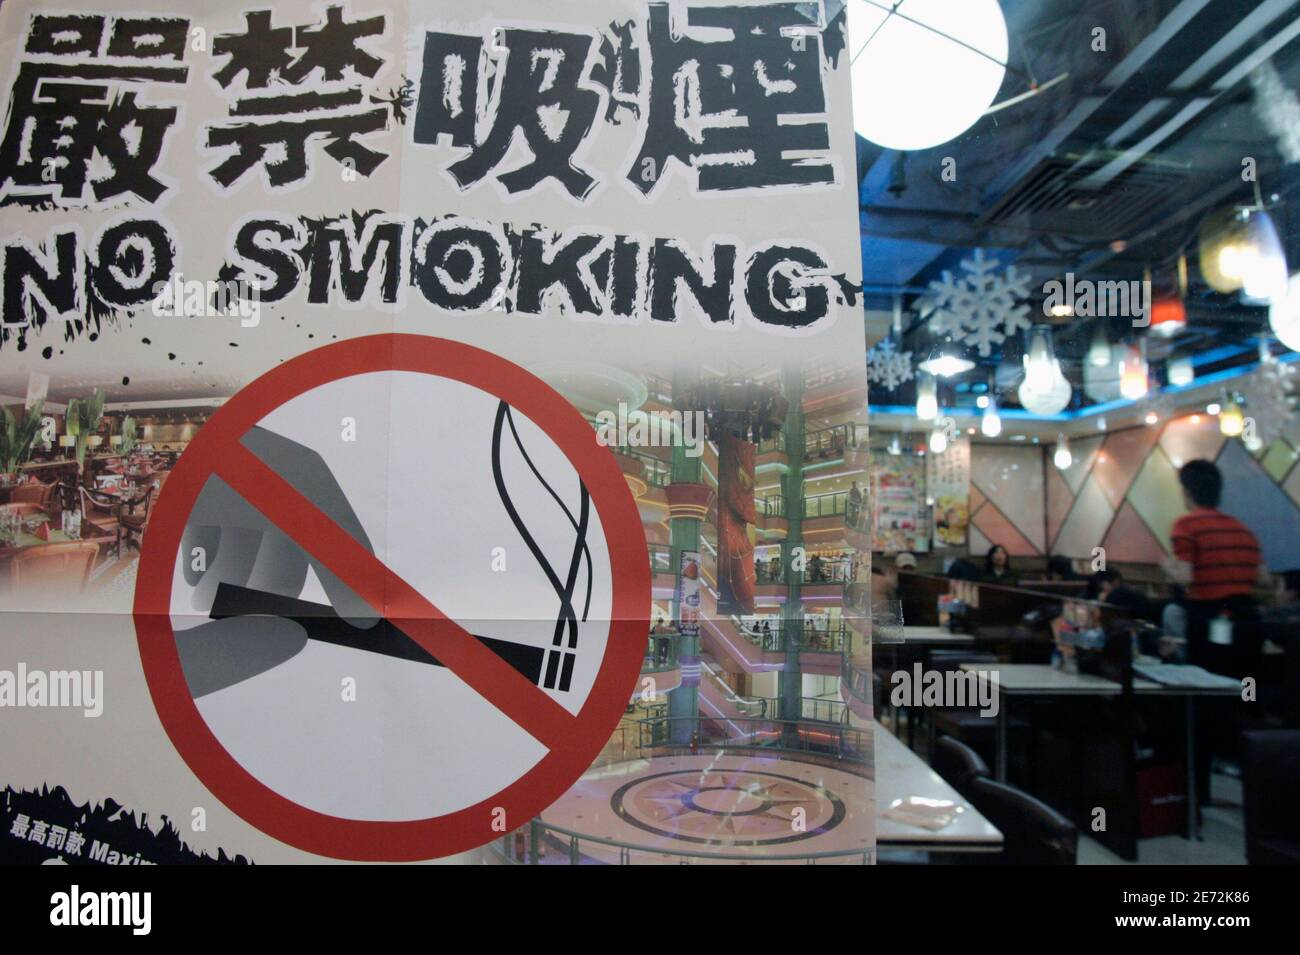 https www alamy com a poster promoting the new anti smoking law is shown at a restaurant in hong kong january 1 2007 hong kongs new anti smoking law which came into force on january 1 bans smoking in public spaces such as restaurants workplaces beaches and most areas in public parks reuterspaul yeung china image400200086 html